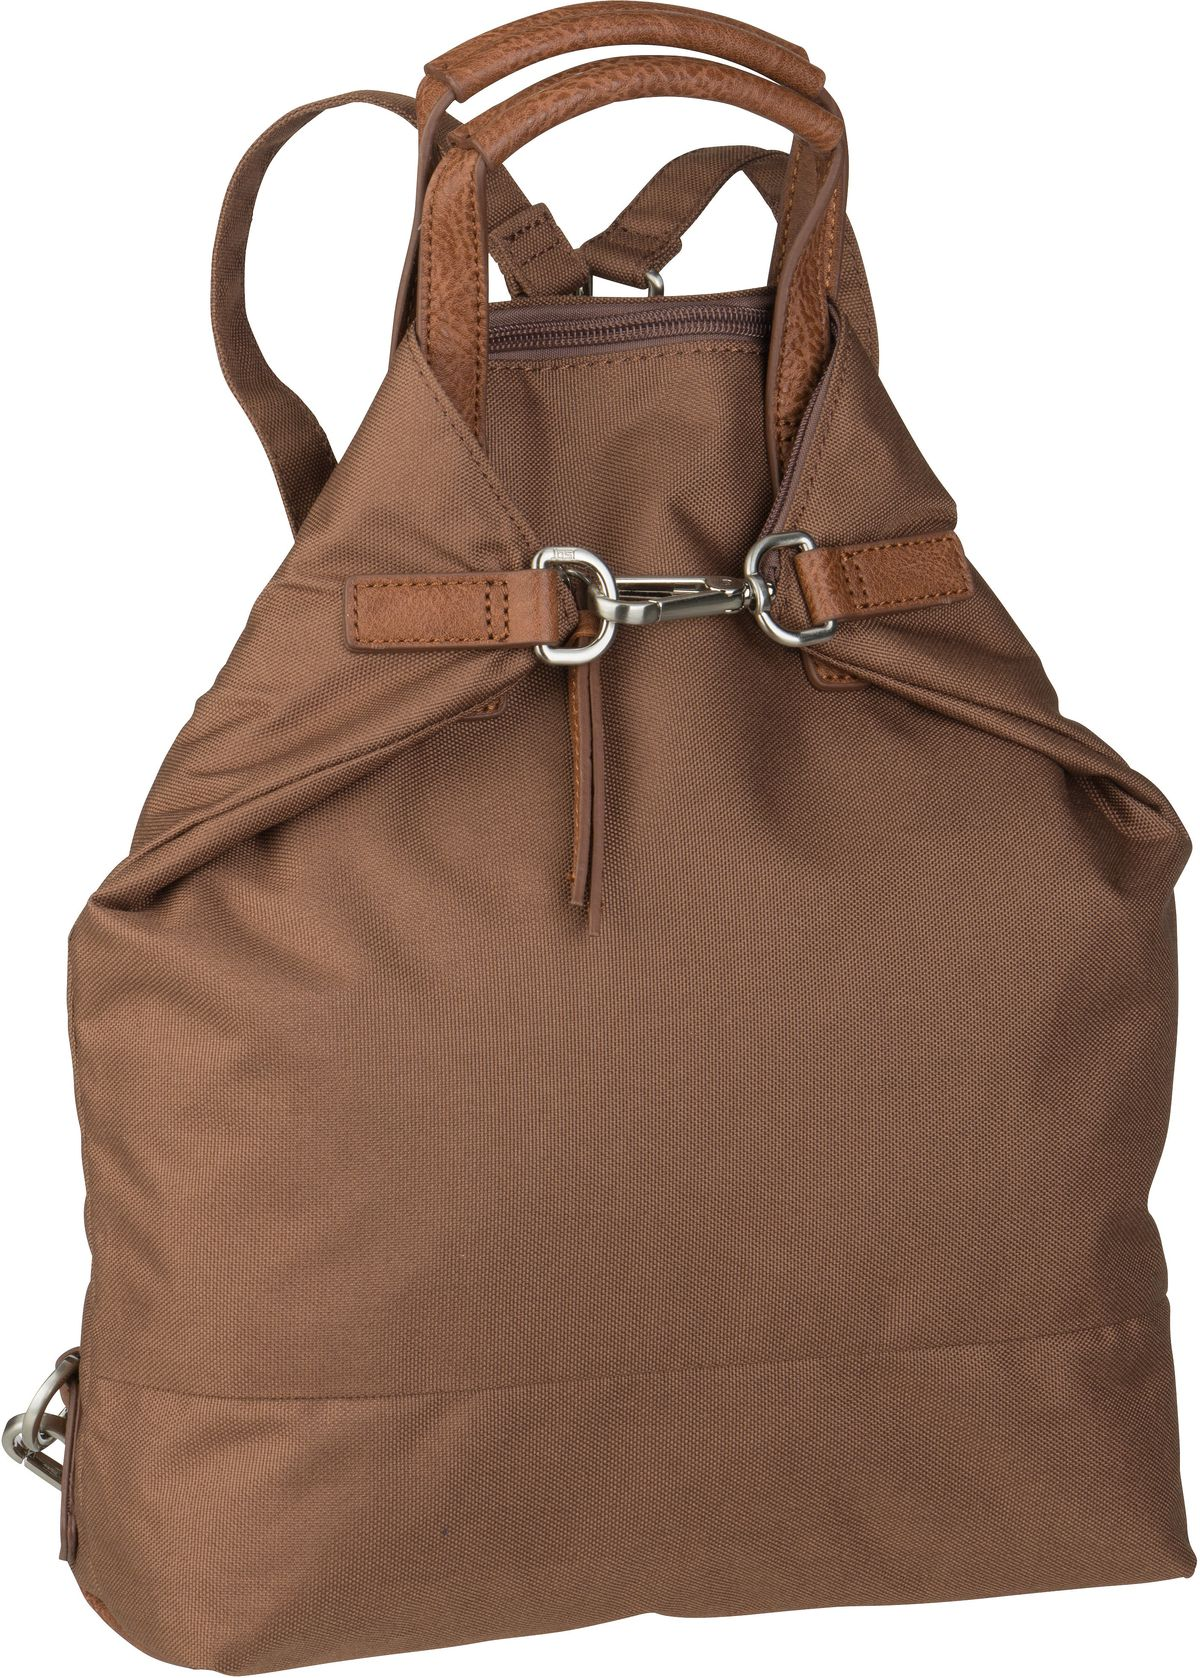 Jost Rucksack / Daypack 1126 X-Change Bag XS Mid Brown